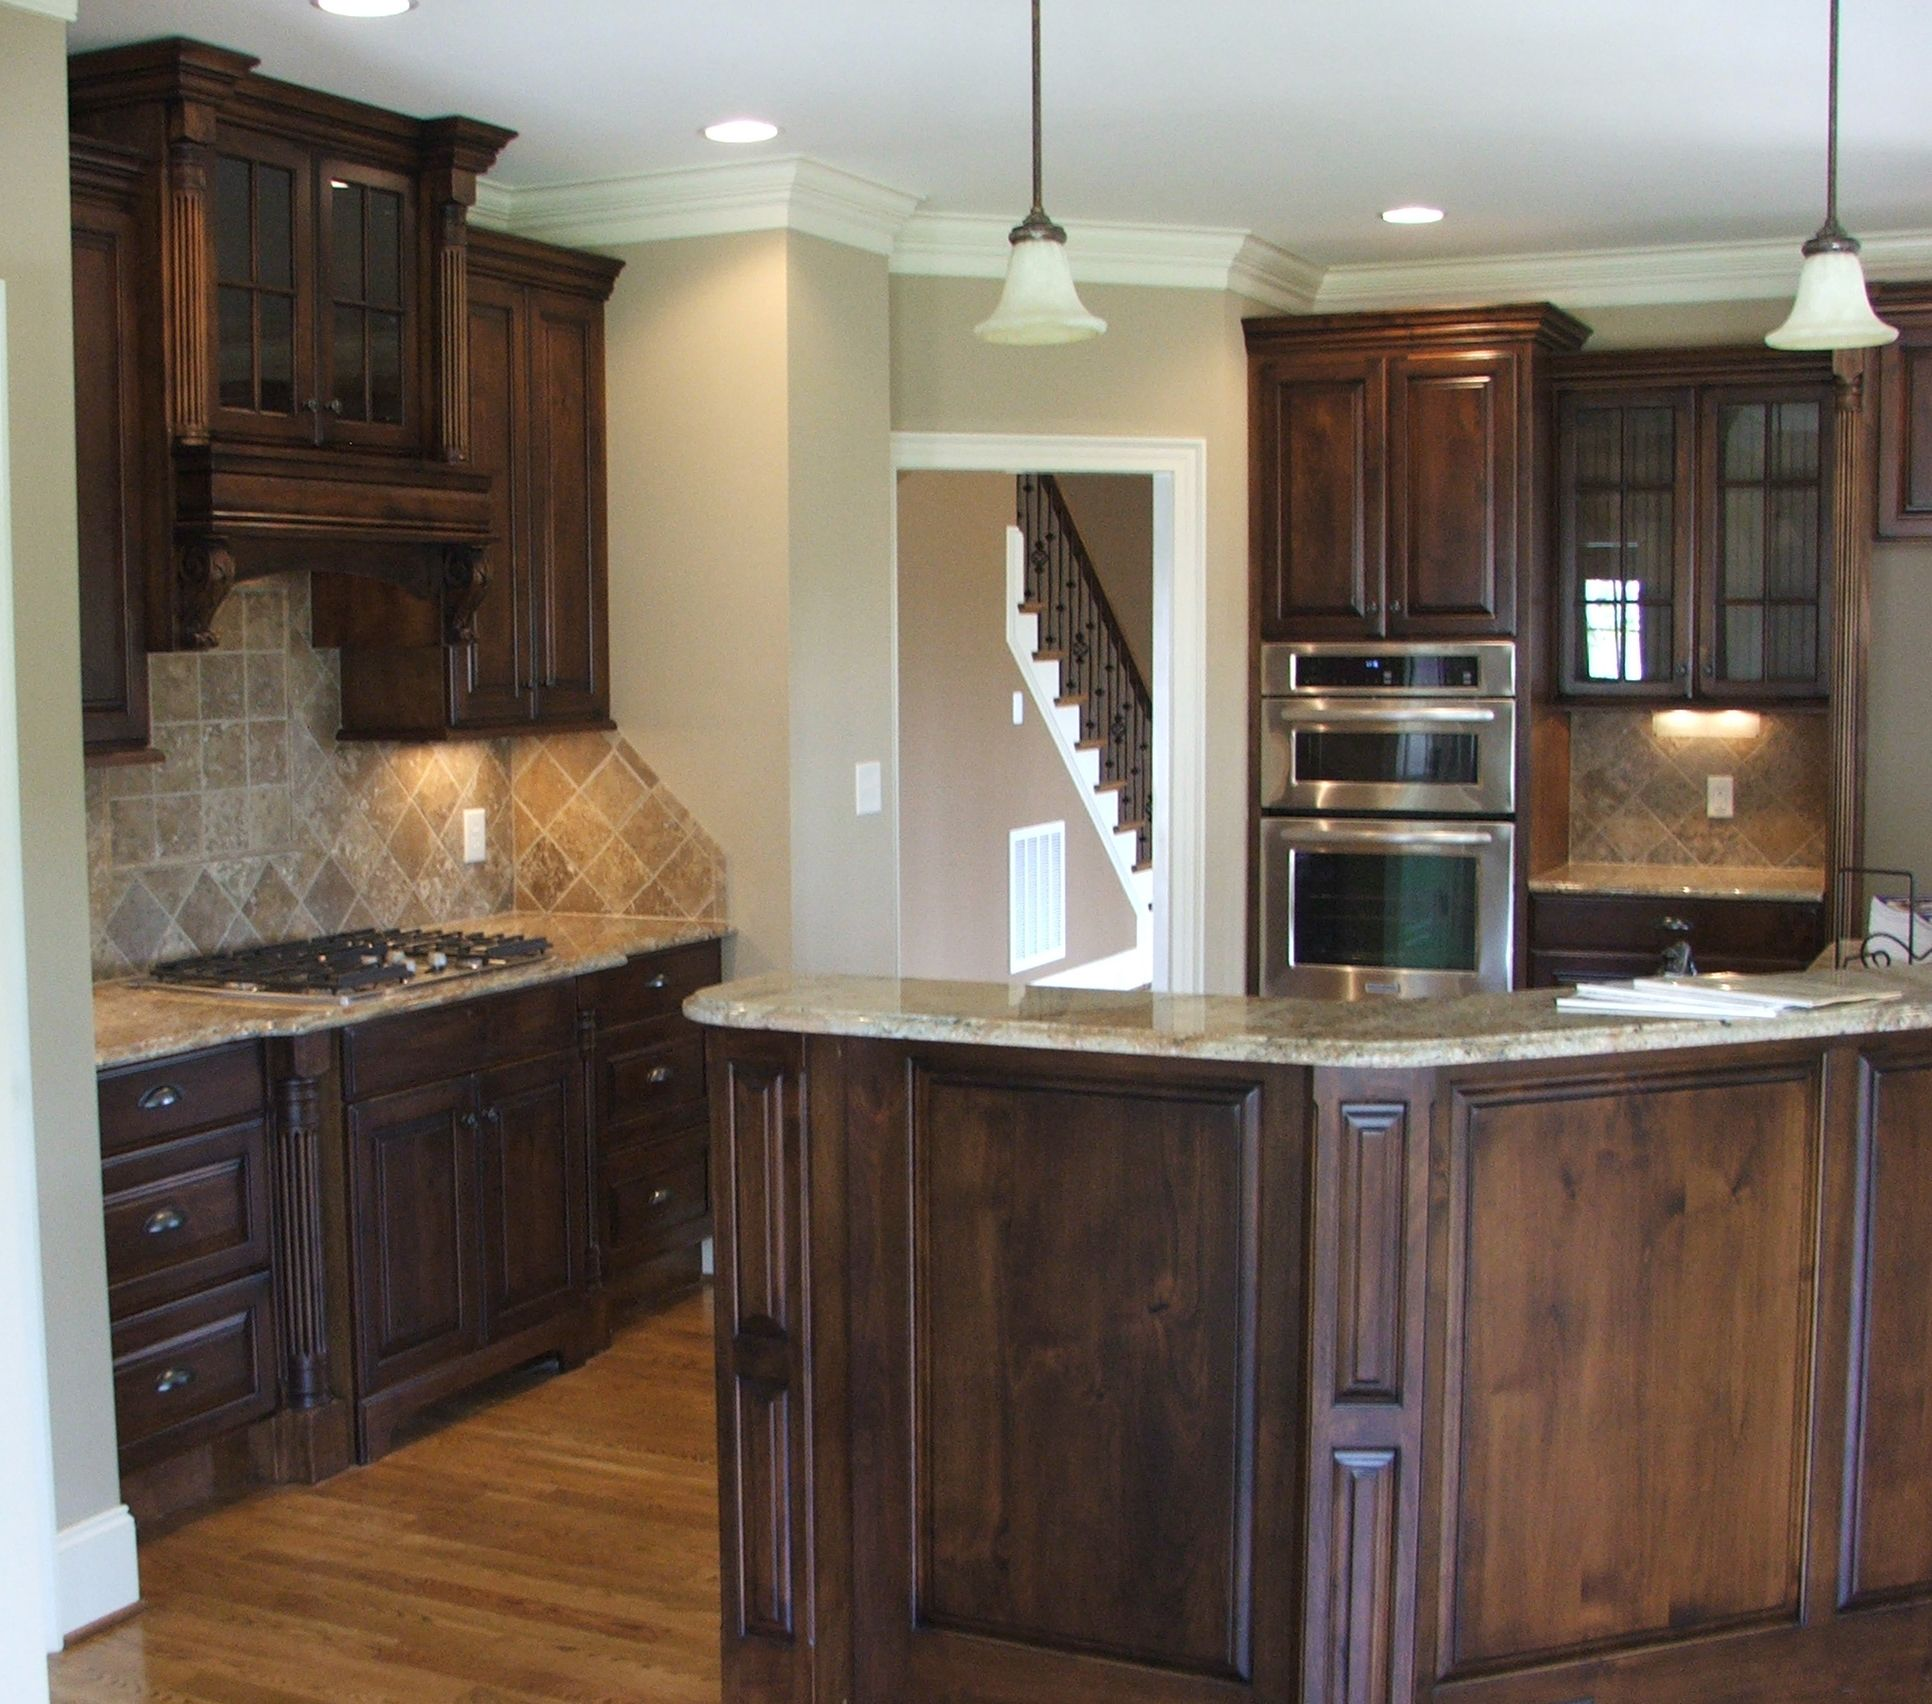 Custom Cabinets Greensboro Kernersville Winston Salem Dixon Custom Cabinetry Kitchen Redo Custom Cabinets Custom Cabinetry